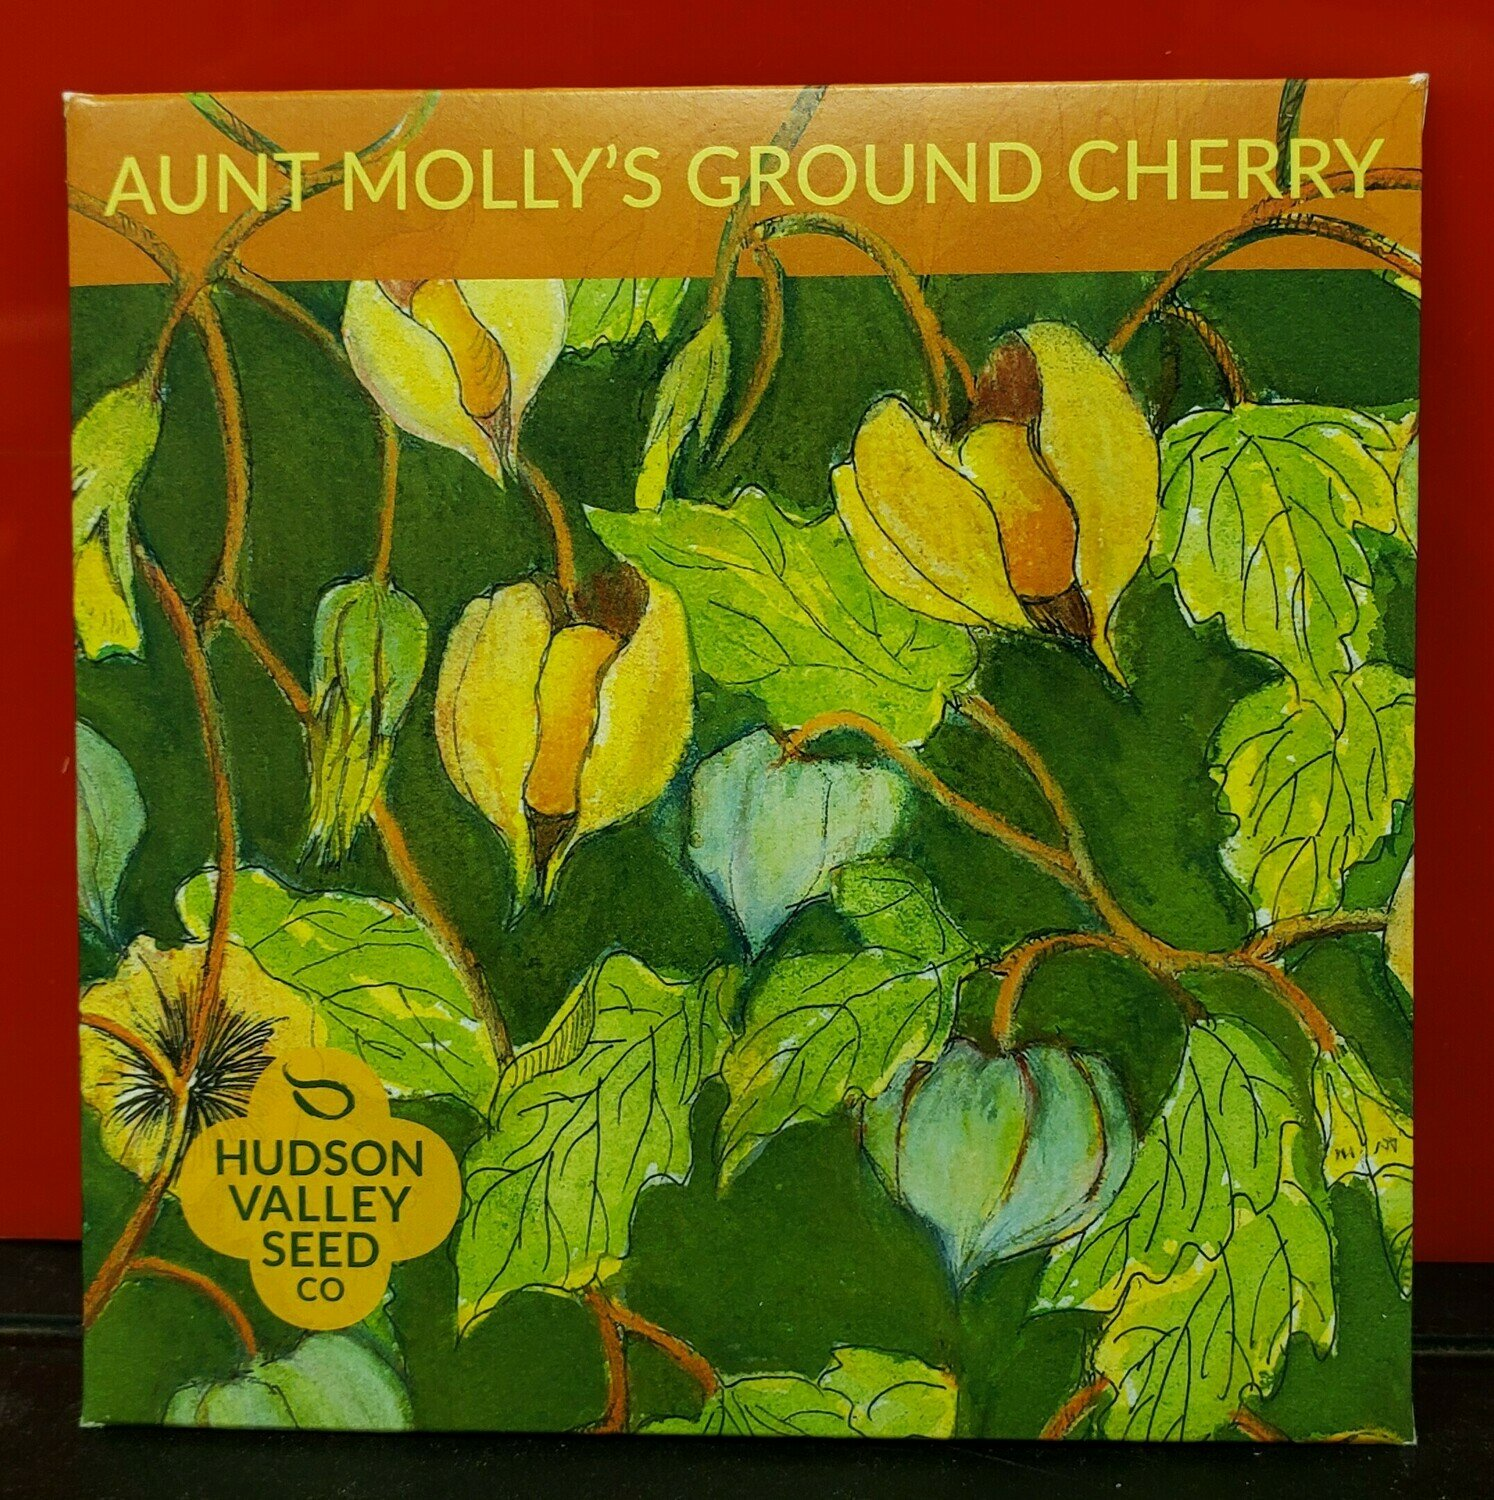 Art Pack Seeds: Ground Cherry 'Aunt Molly's'